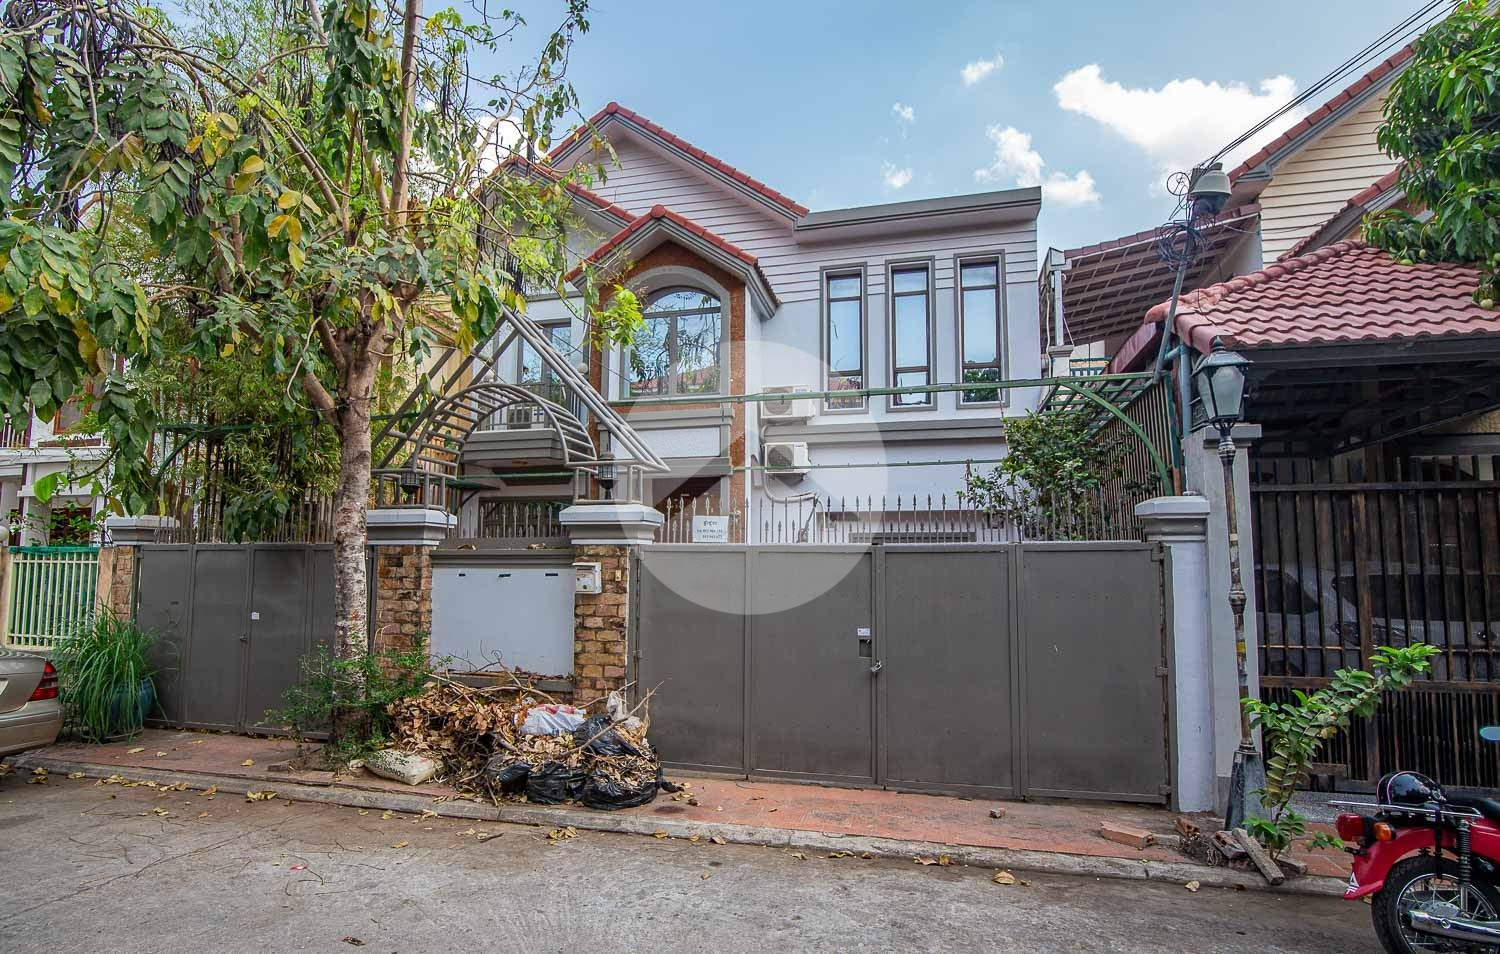 5 Bedroom Villa For Rent - Chroy Changvar, Phnom Penh